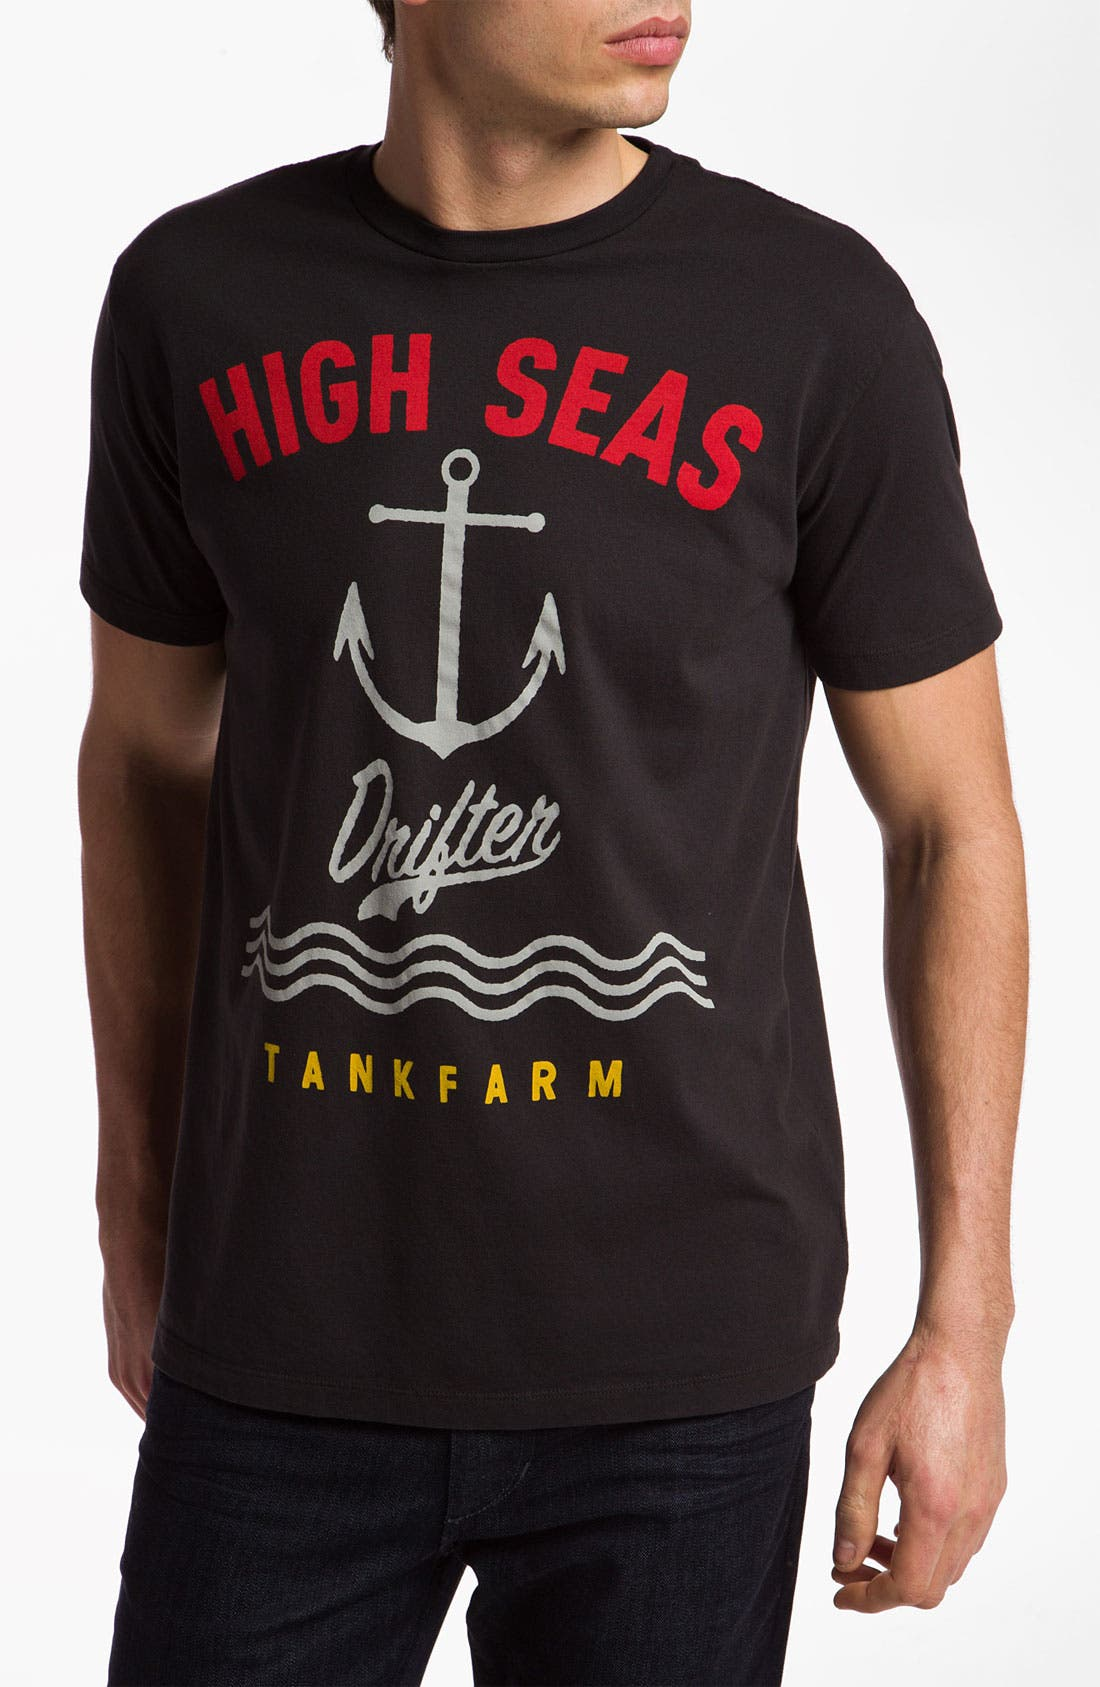 Alternate Image 1 Selected - Tankfarm 'High Seas Drifter' Graphic T-Shirt